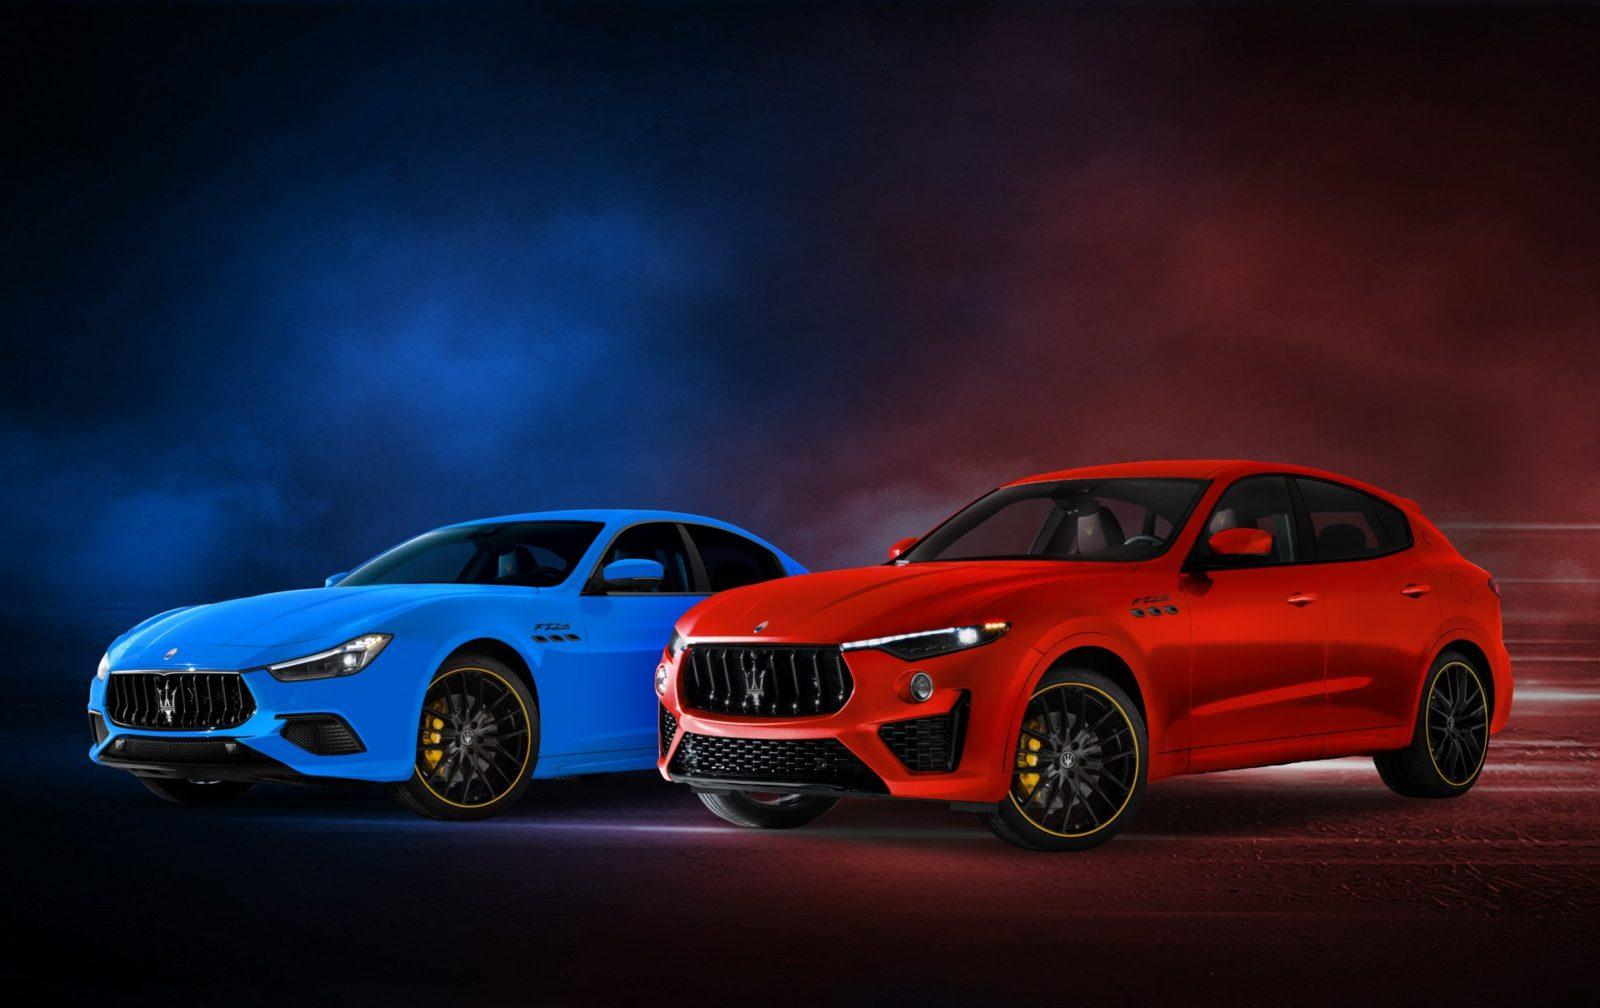 maserati's-f-tributo-special-editions-reach-north-american-showrooms-this-month